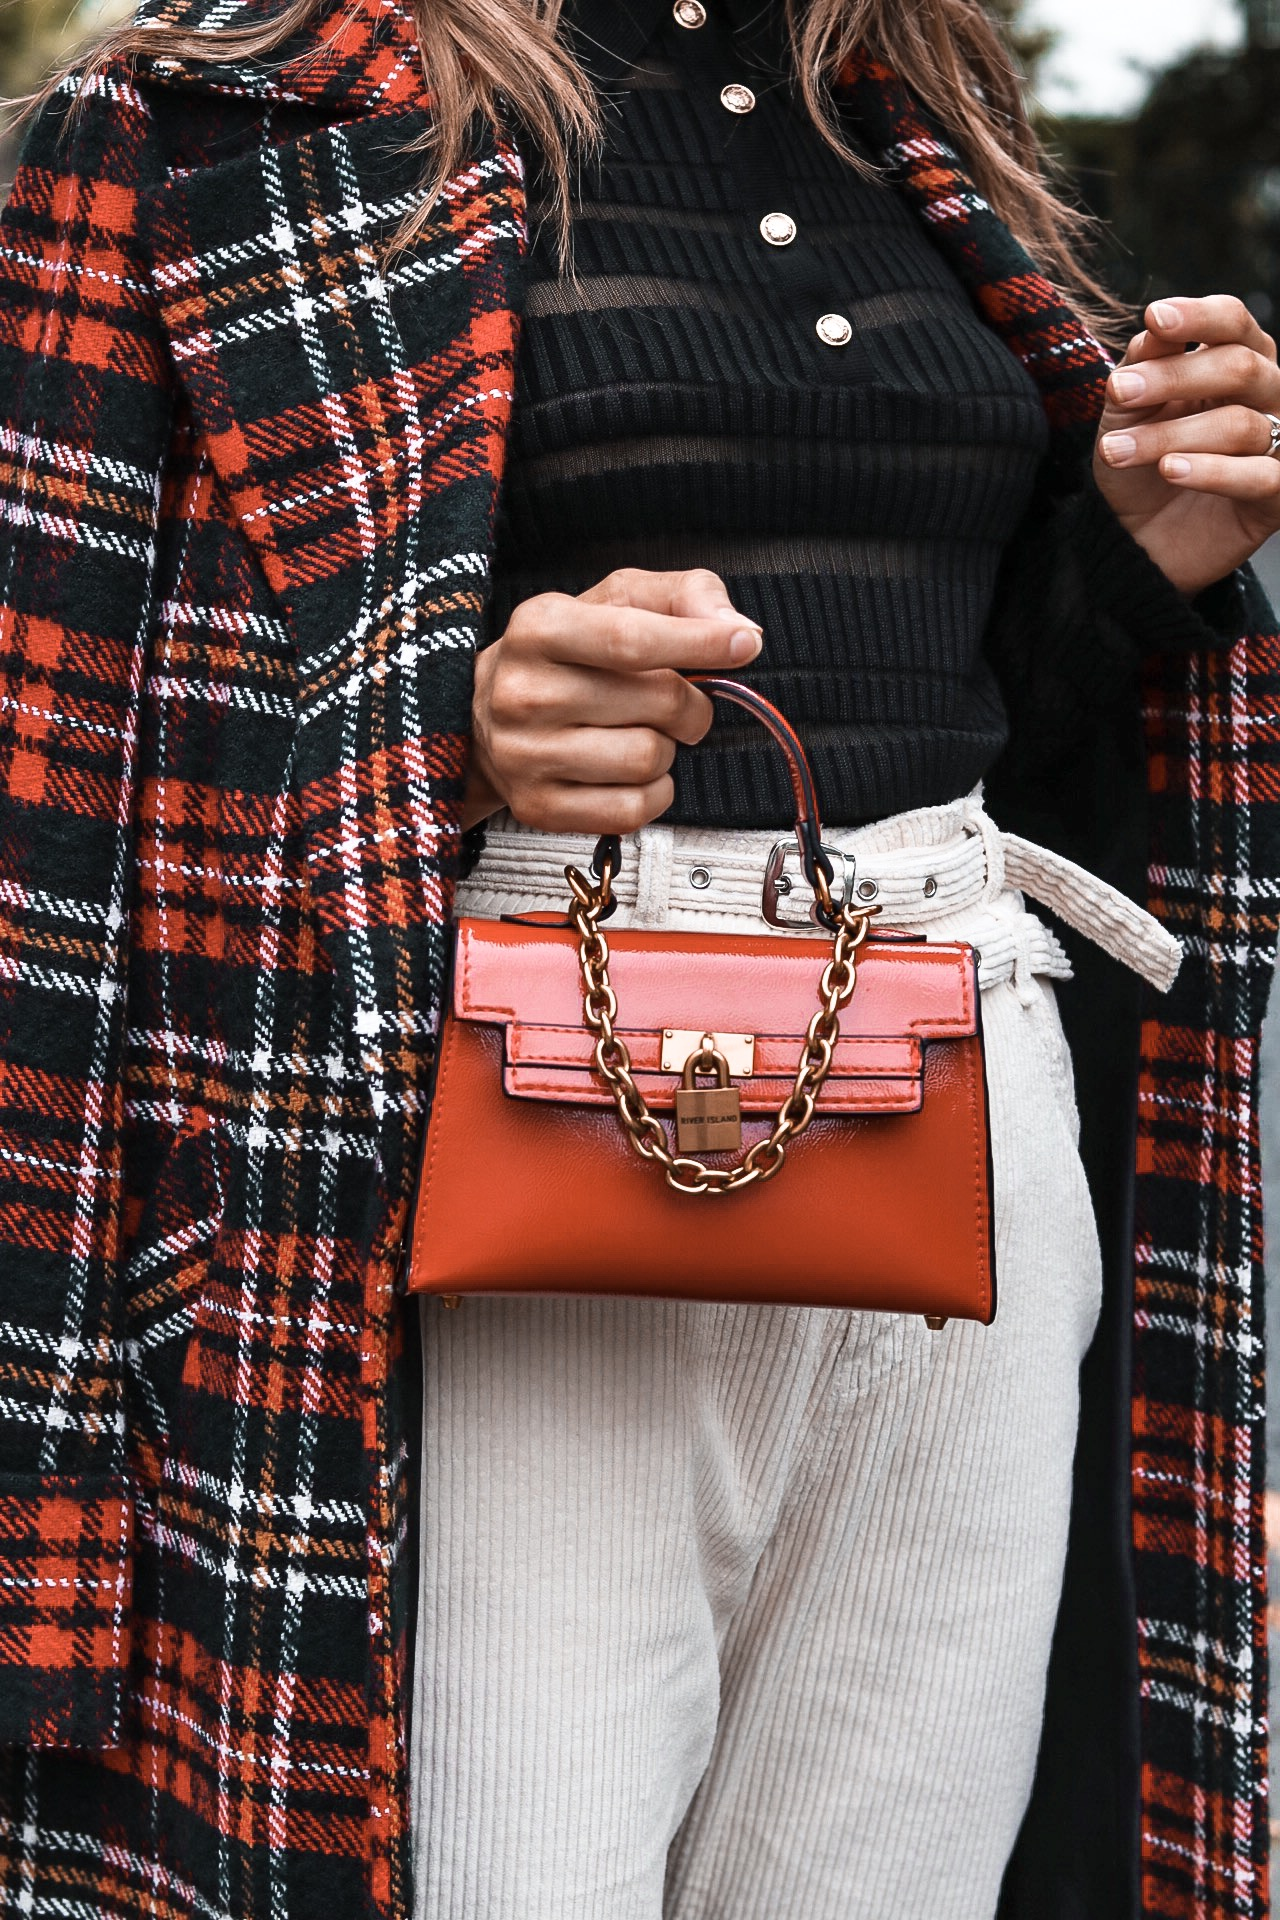 fashion, style, ootd, London fashion, London, tartan coat, tartan, cord, corduroy, sheer top, notting hill, autumn fashion, winter fashion